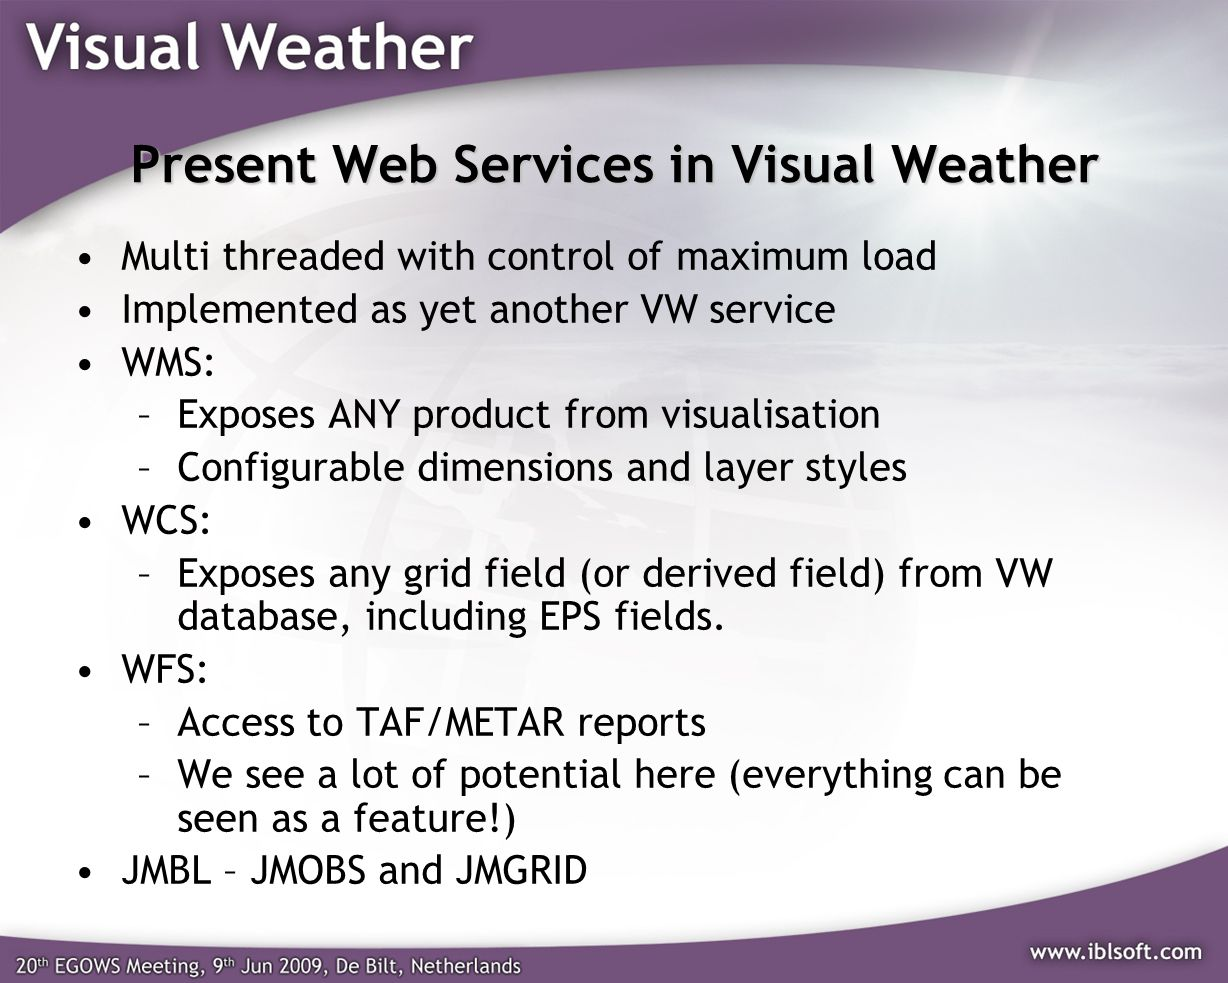 Present Web Services in Visual Weather